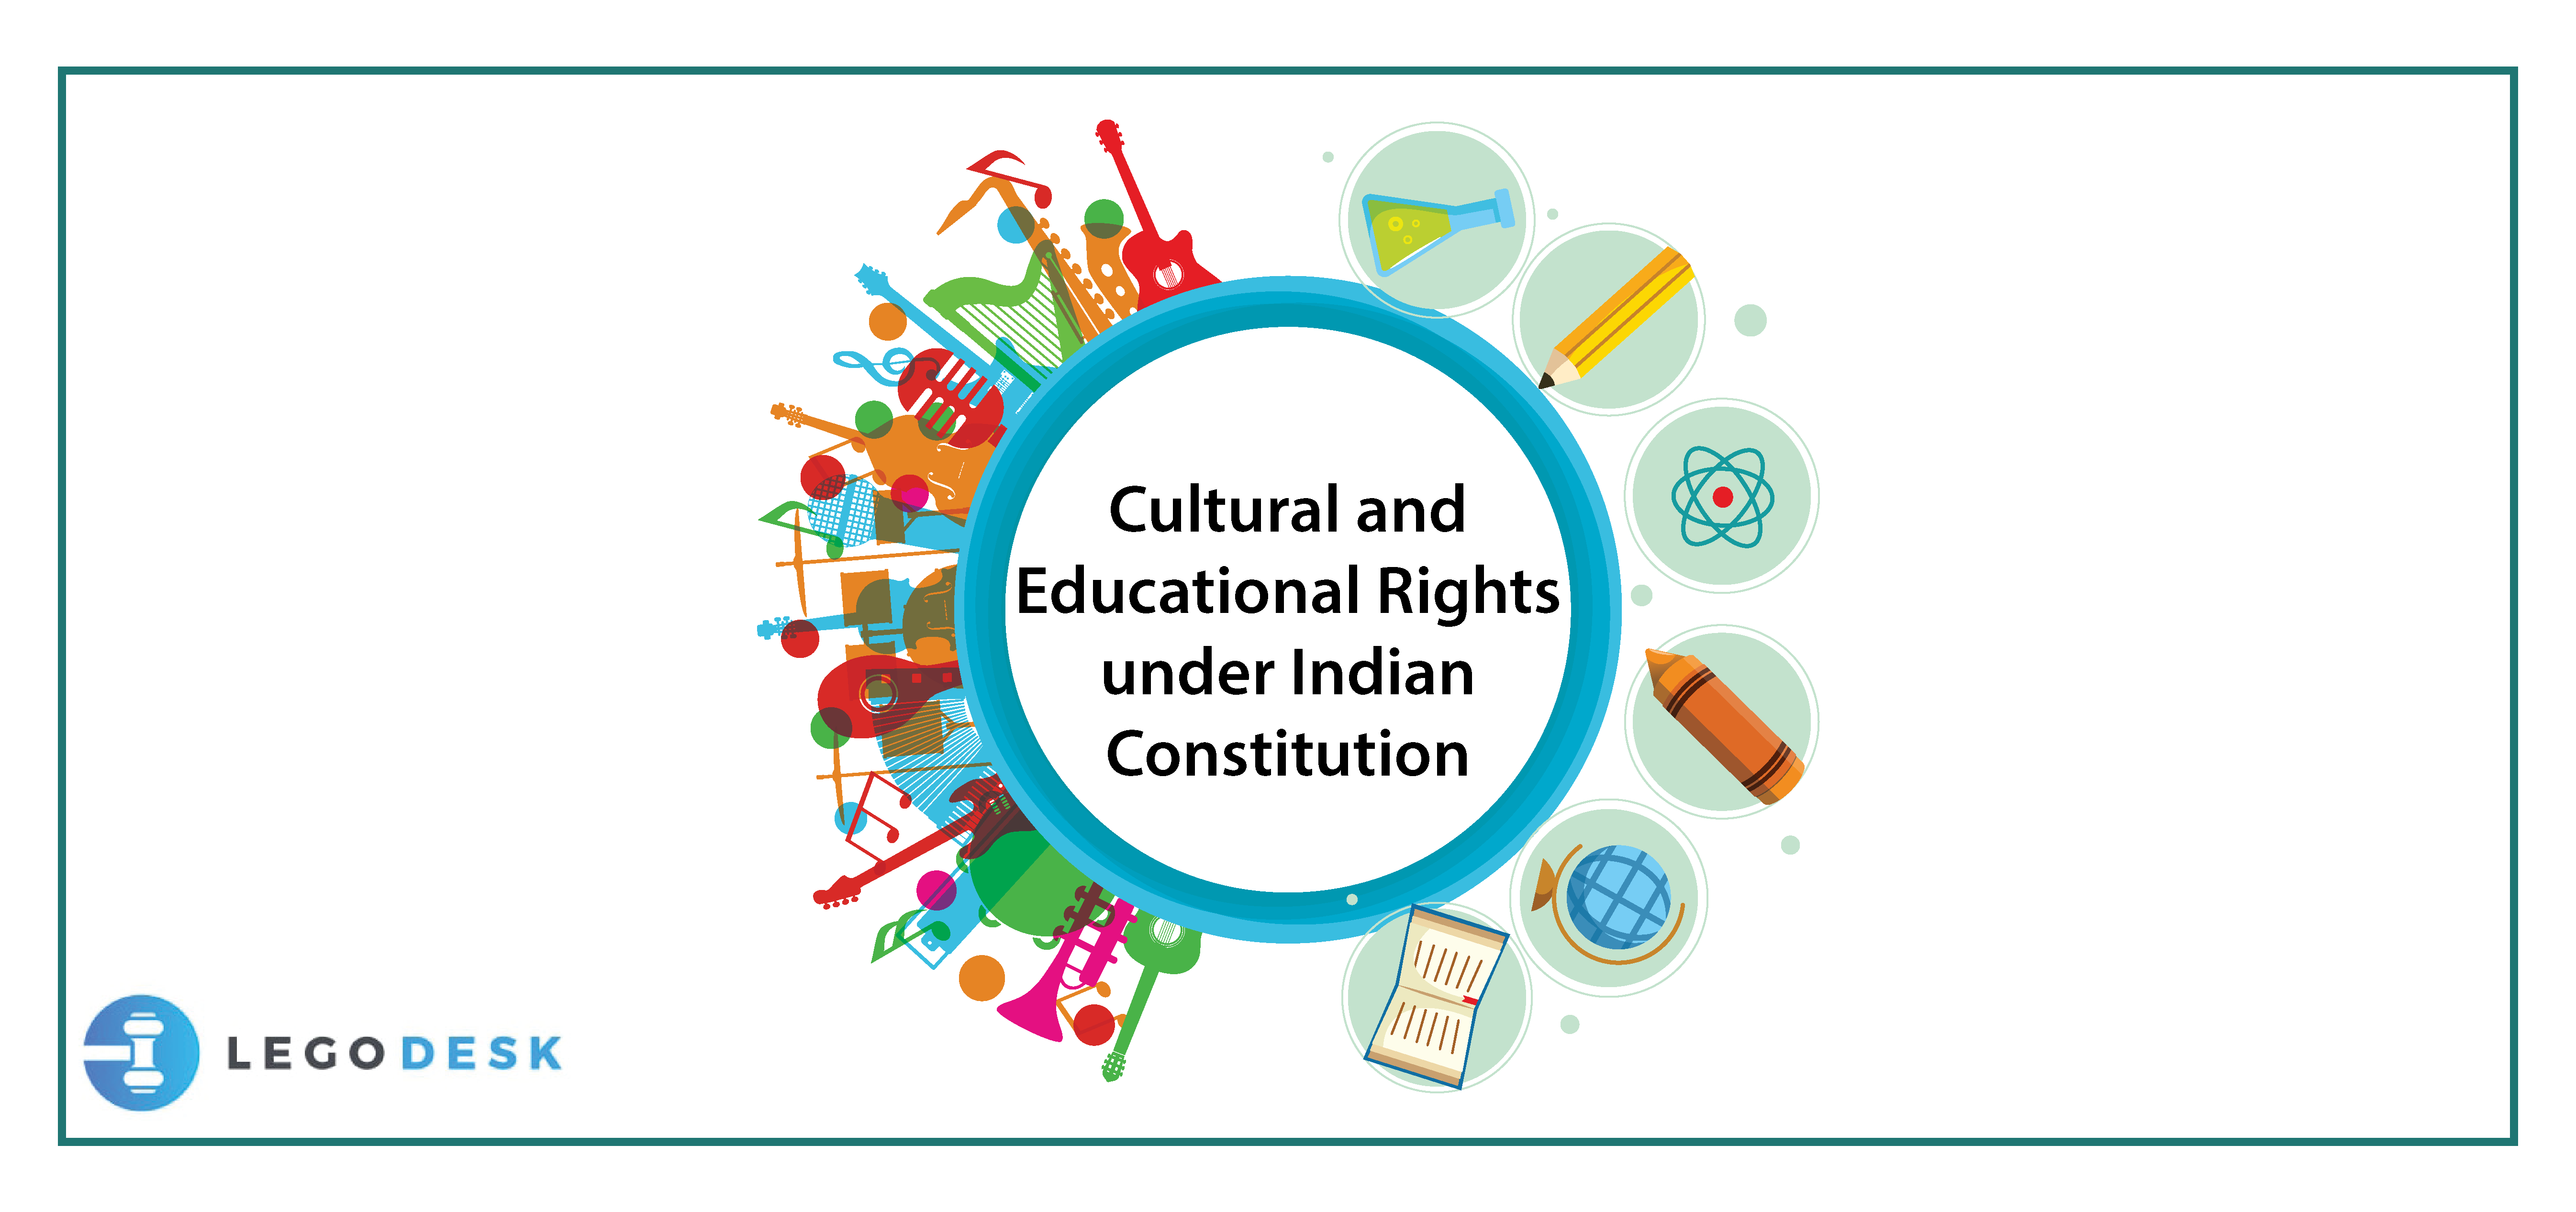 Cultural and Educational Rights under Indian Constitution